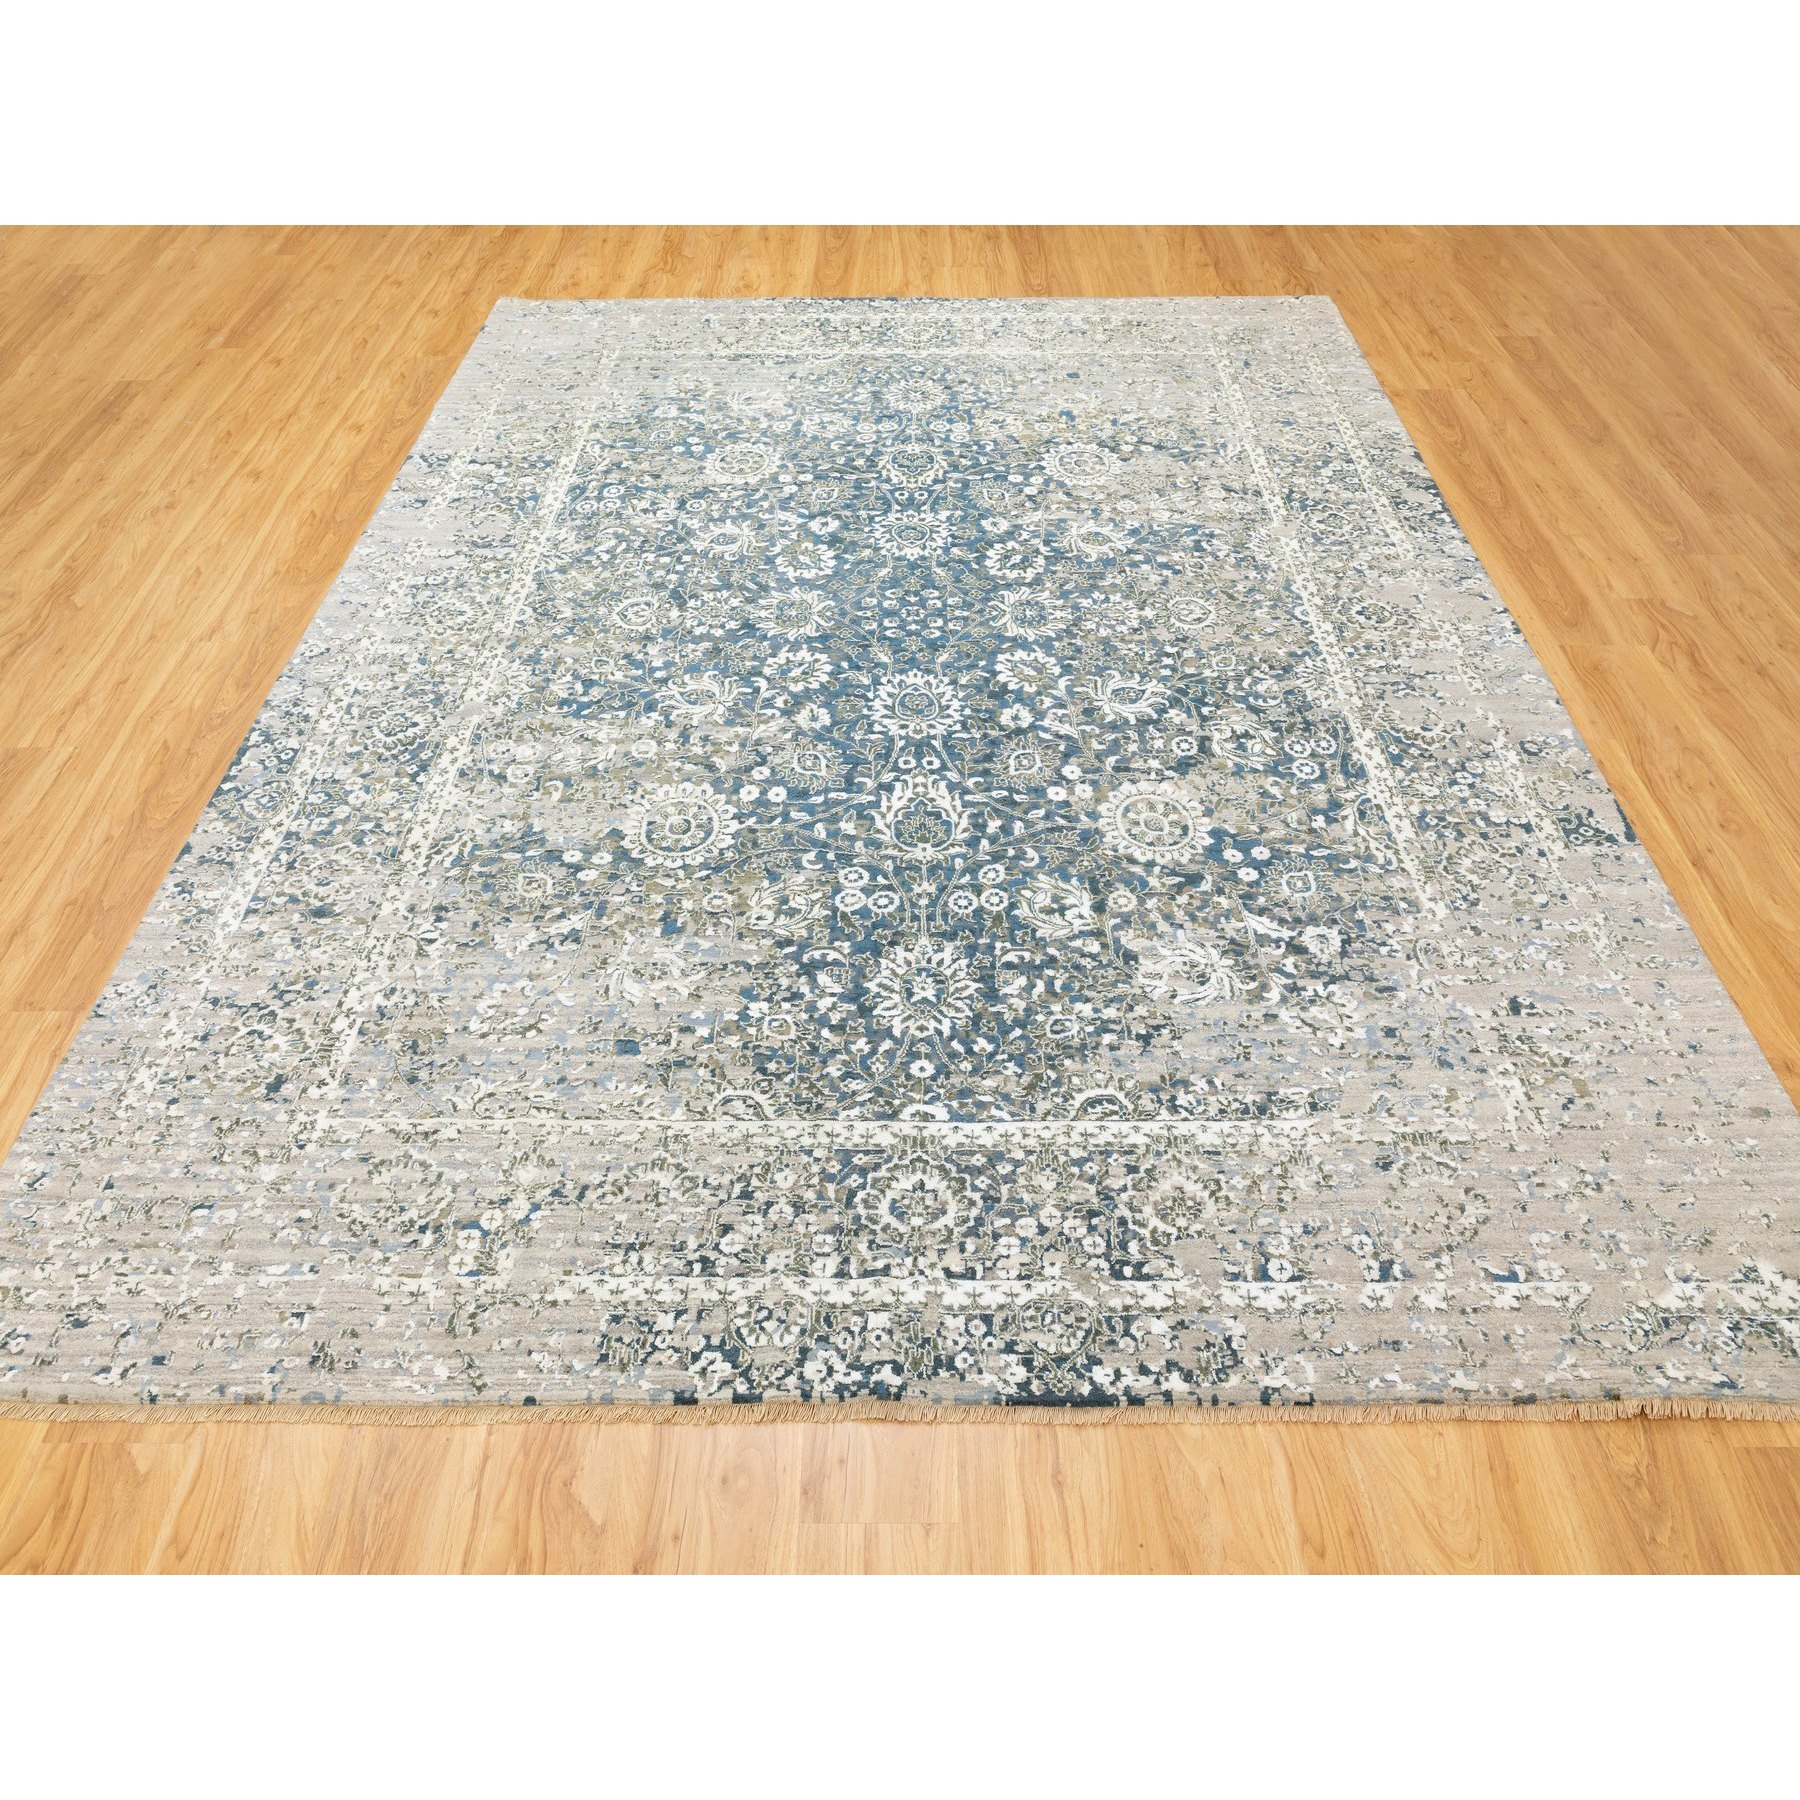 """9'x11'10""""  Denim Blue Pure Silk With Wool Erased Persian Design Hand Knotted Oriental Rug"""